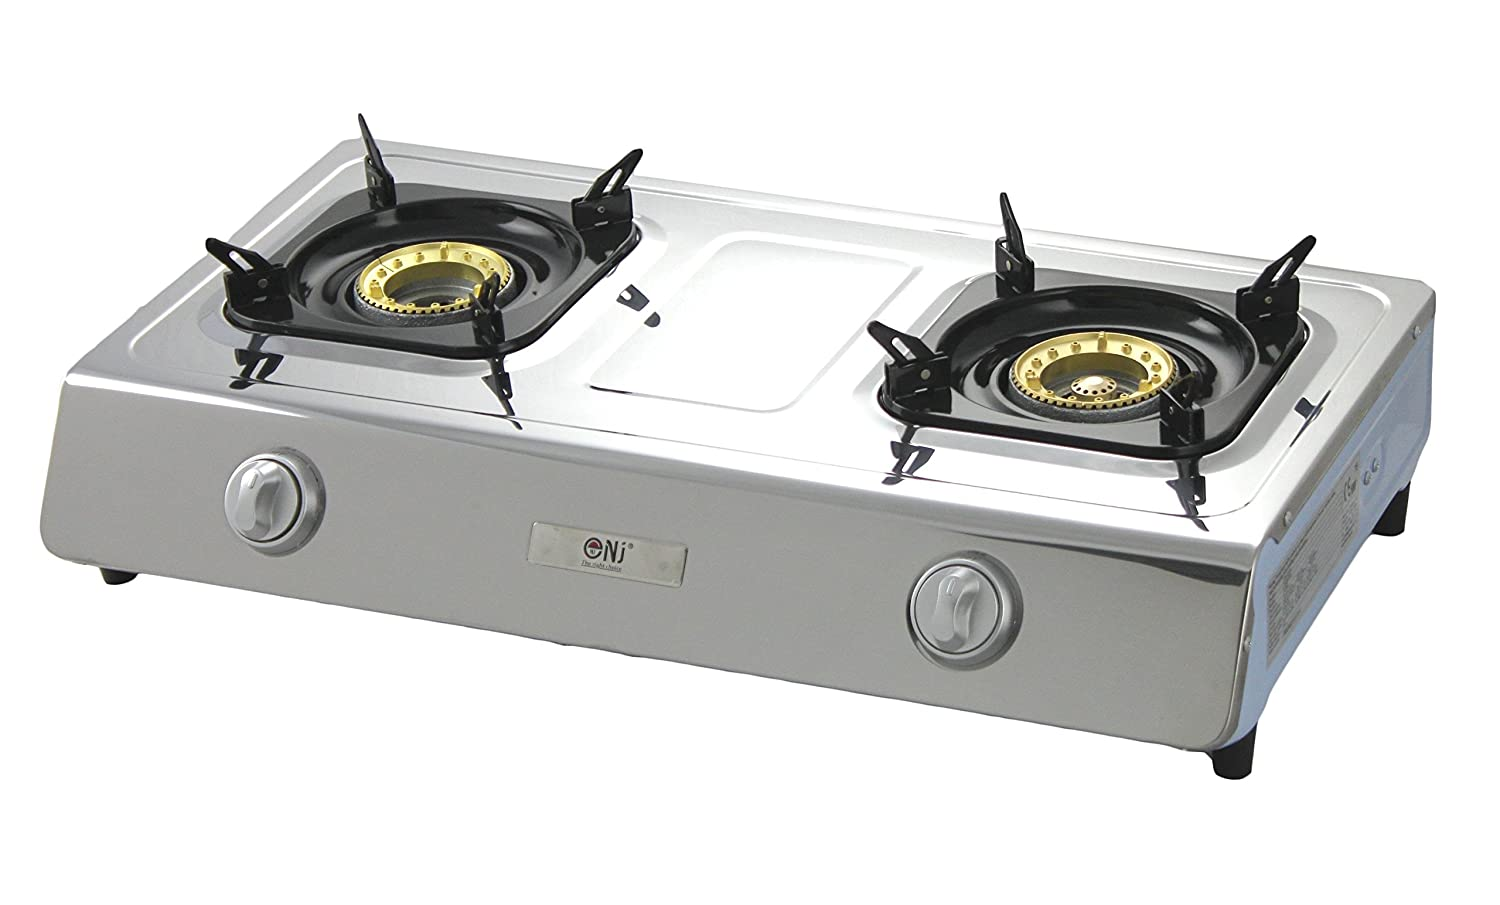 NJ NGB-200 Stainless steel 70cm Gas Stove 2 burners Camping Gas Cooker WOK burner LPG use NEW FONTRON LTD